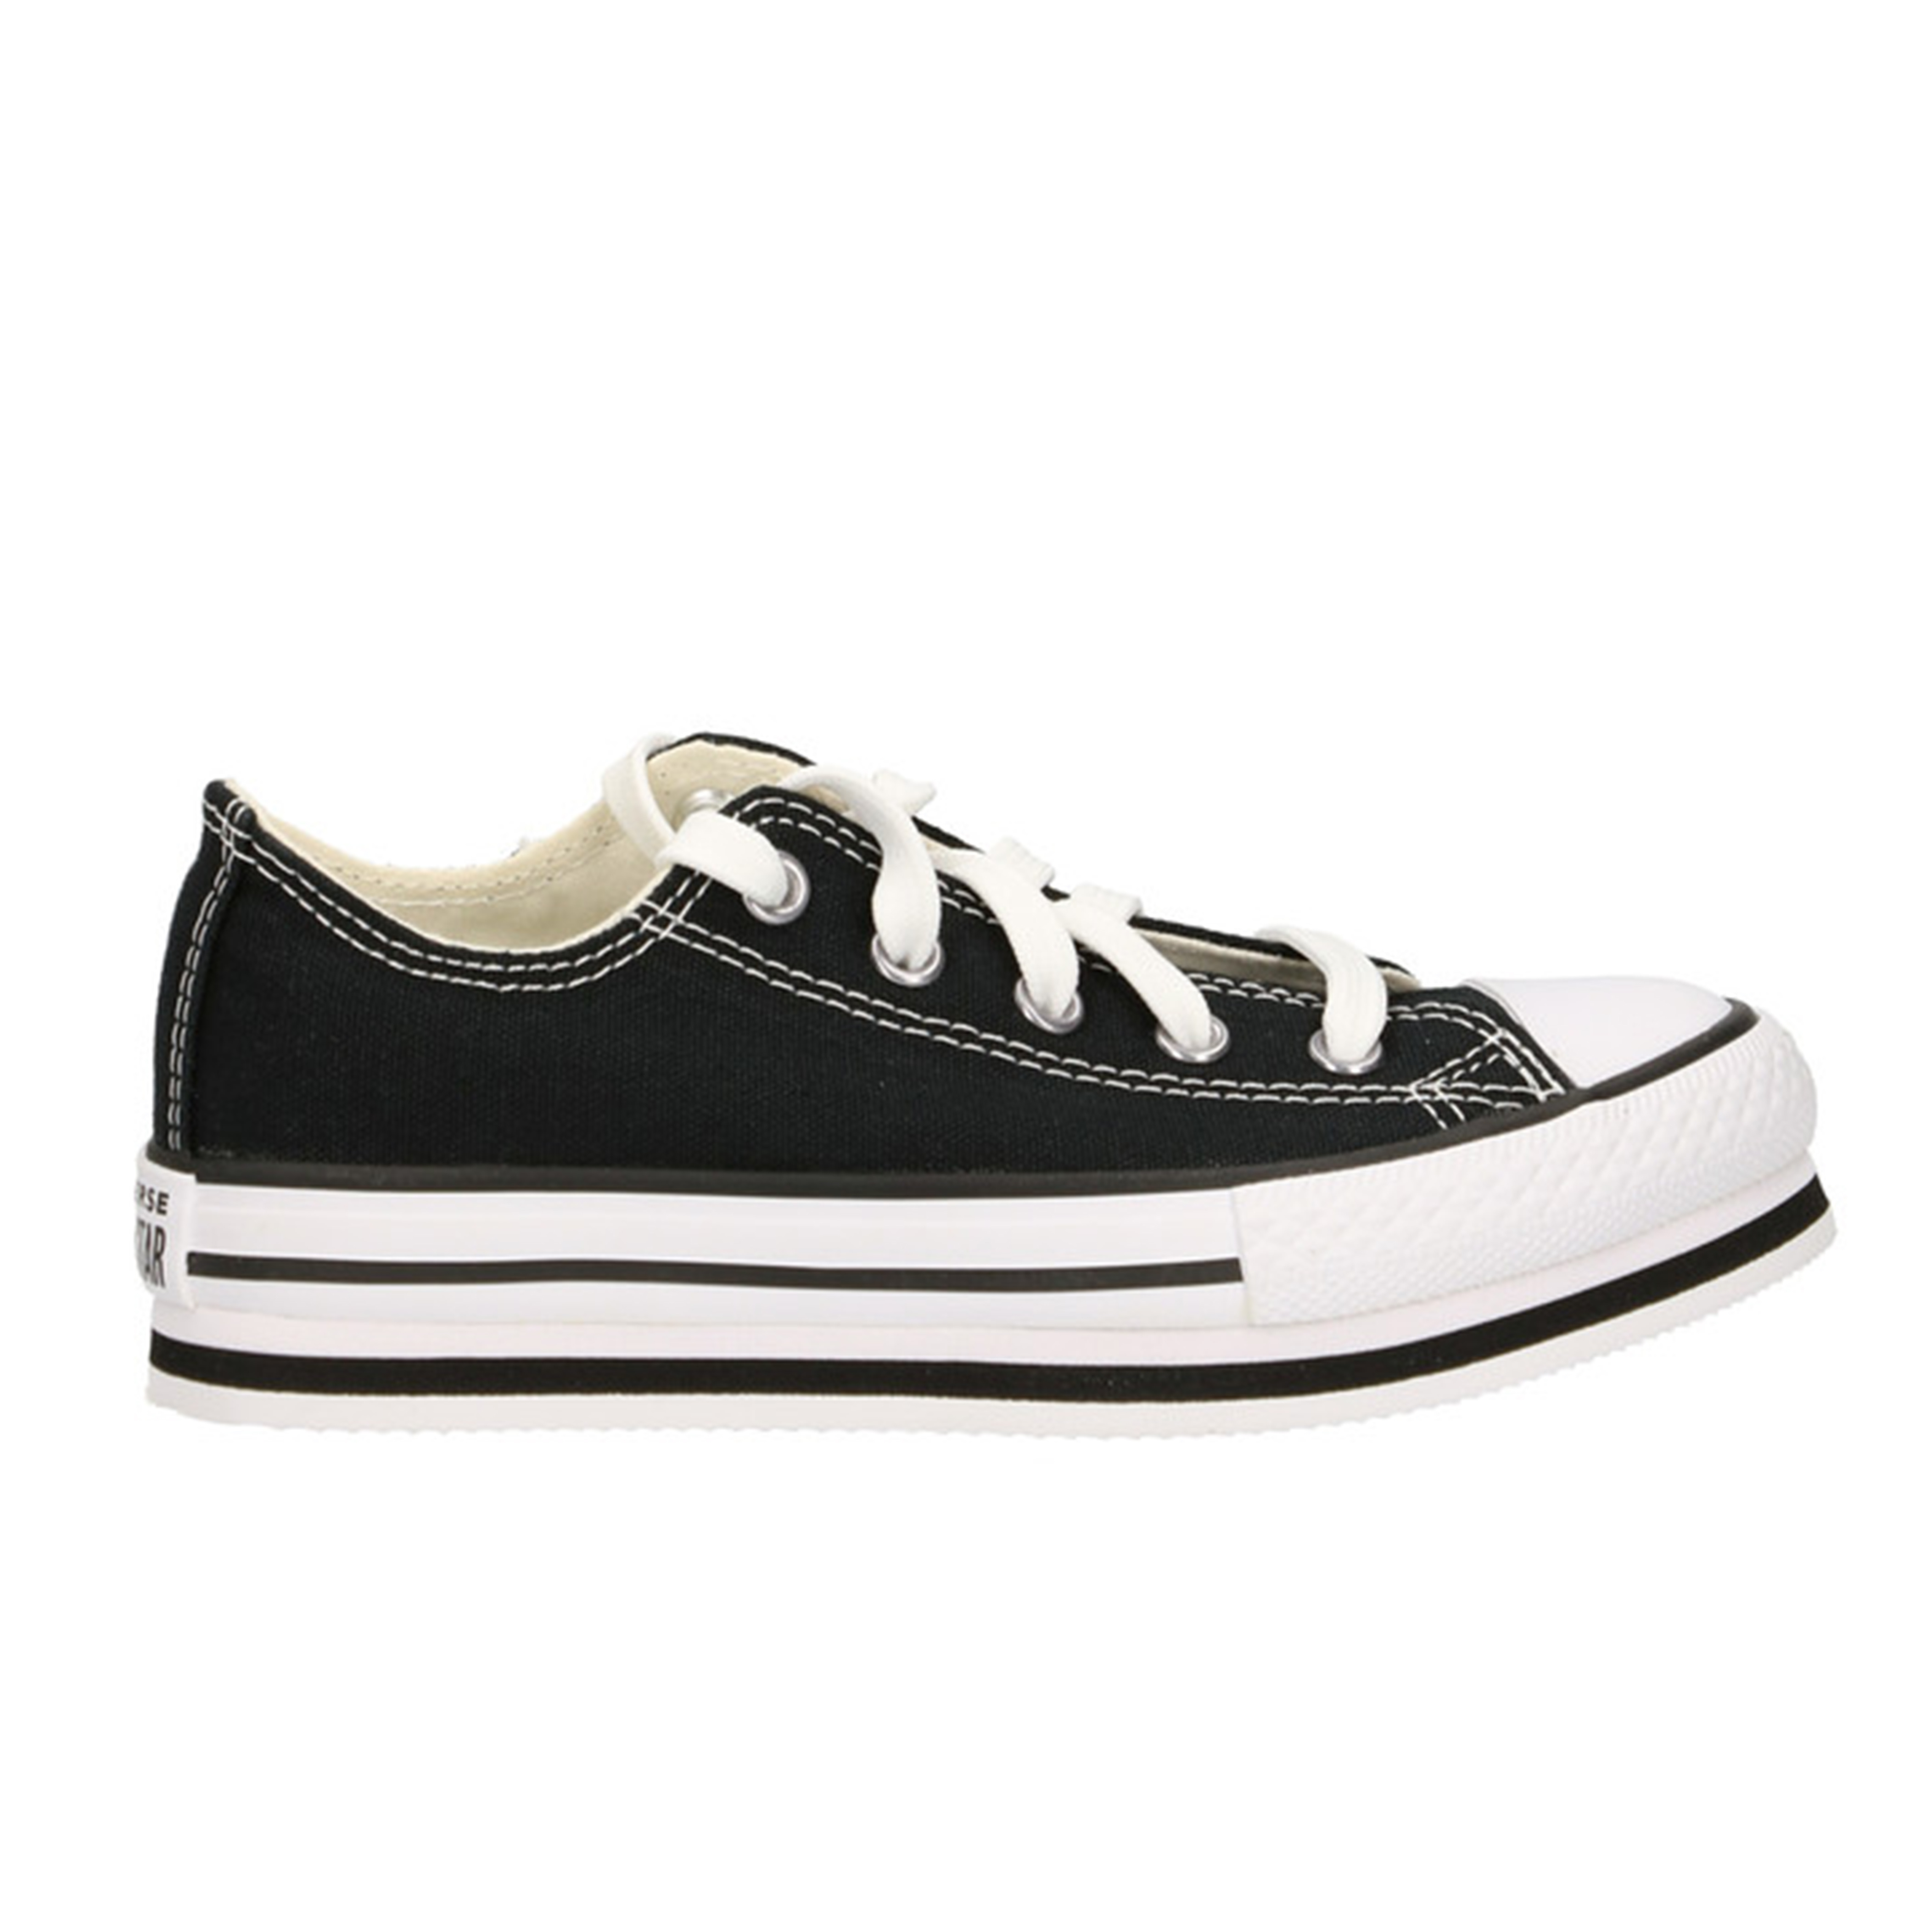 Sneakers  Converse 670033C.001  -10